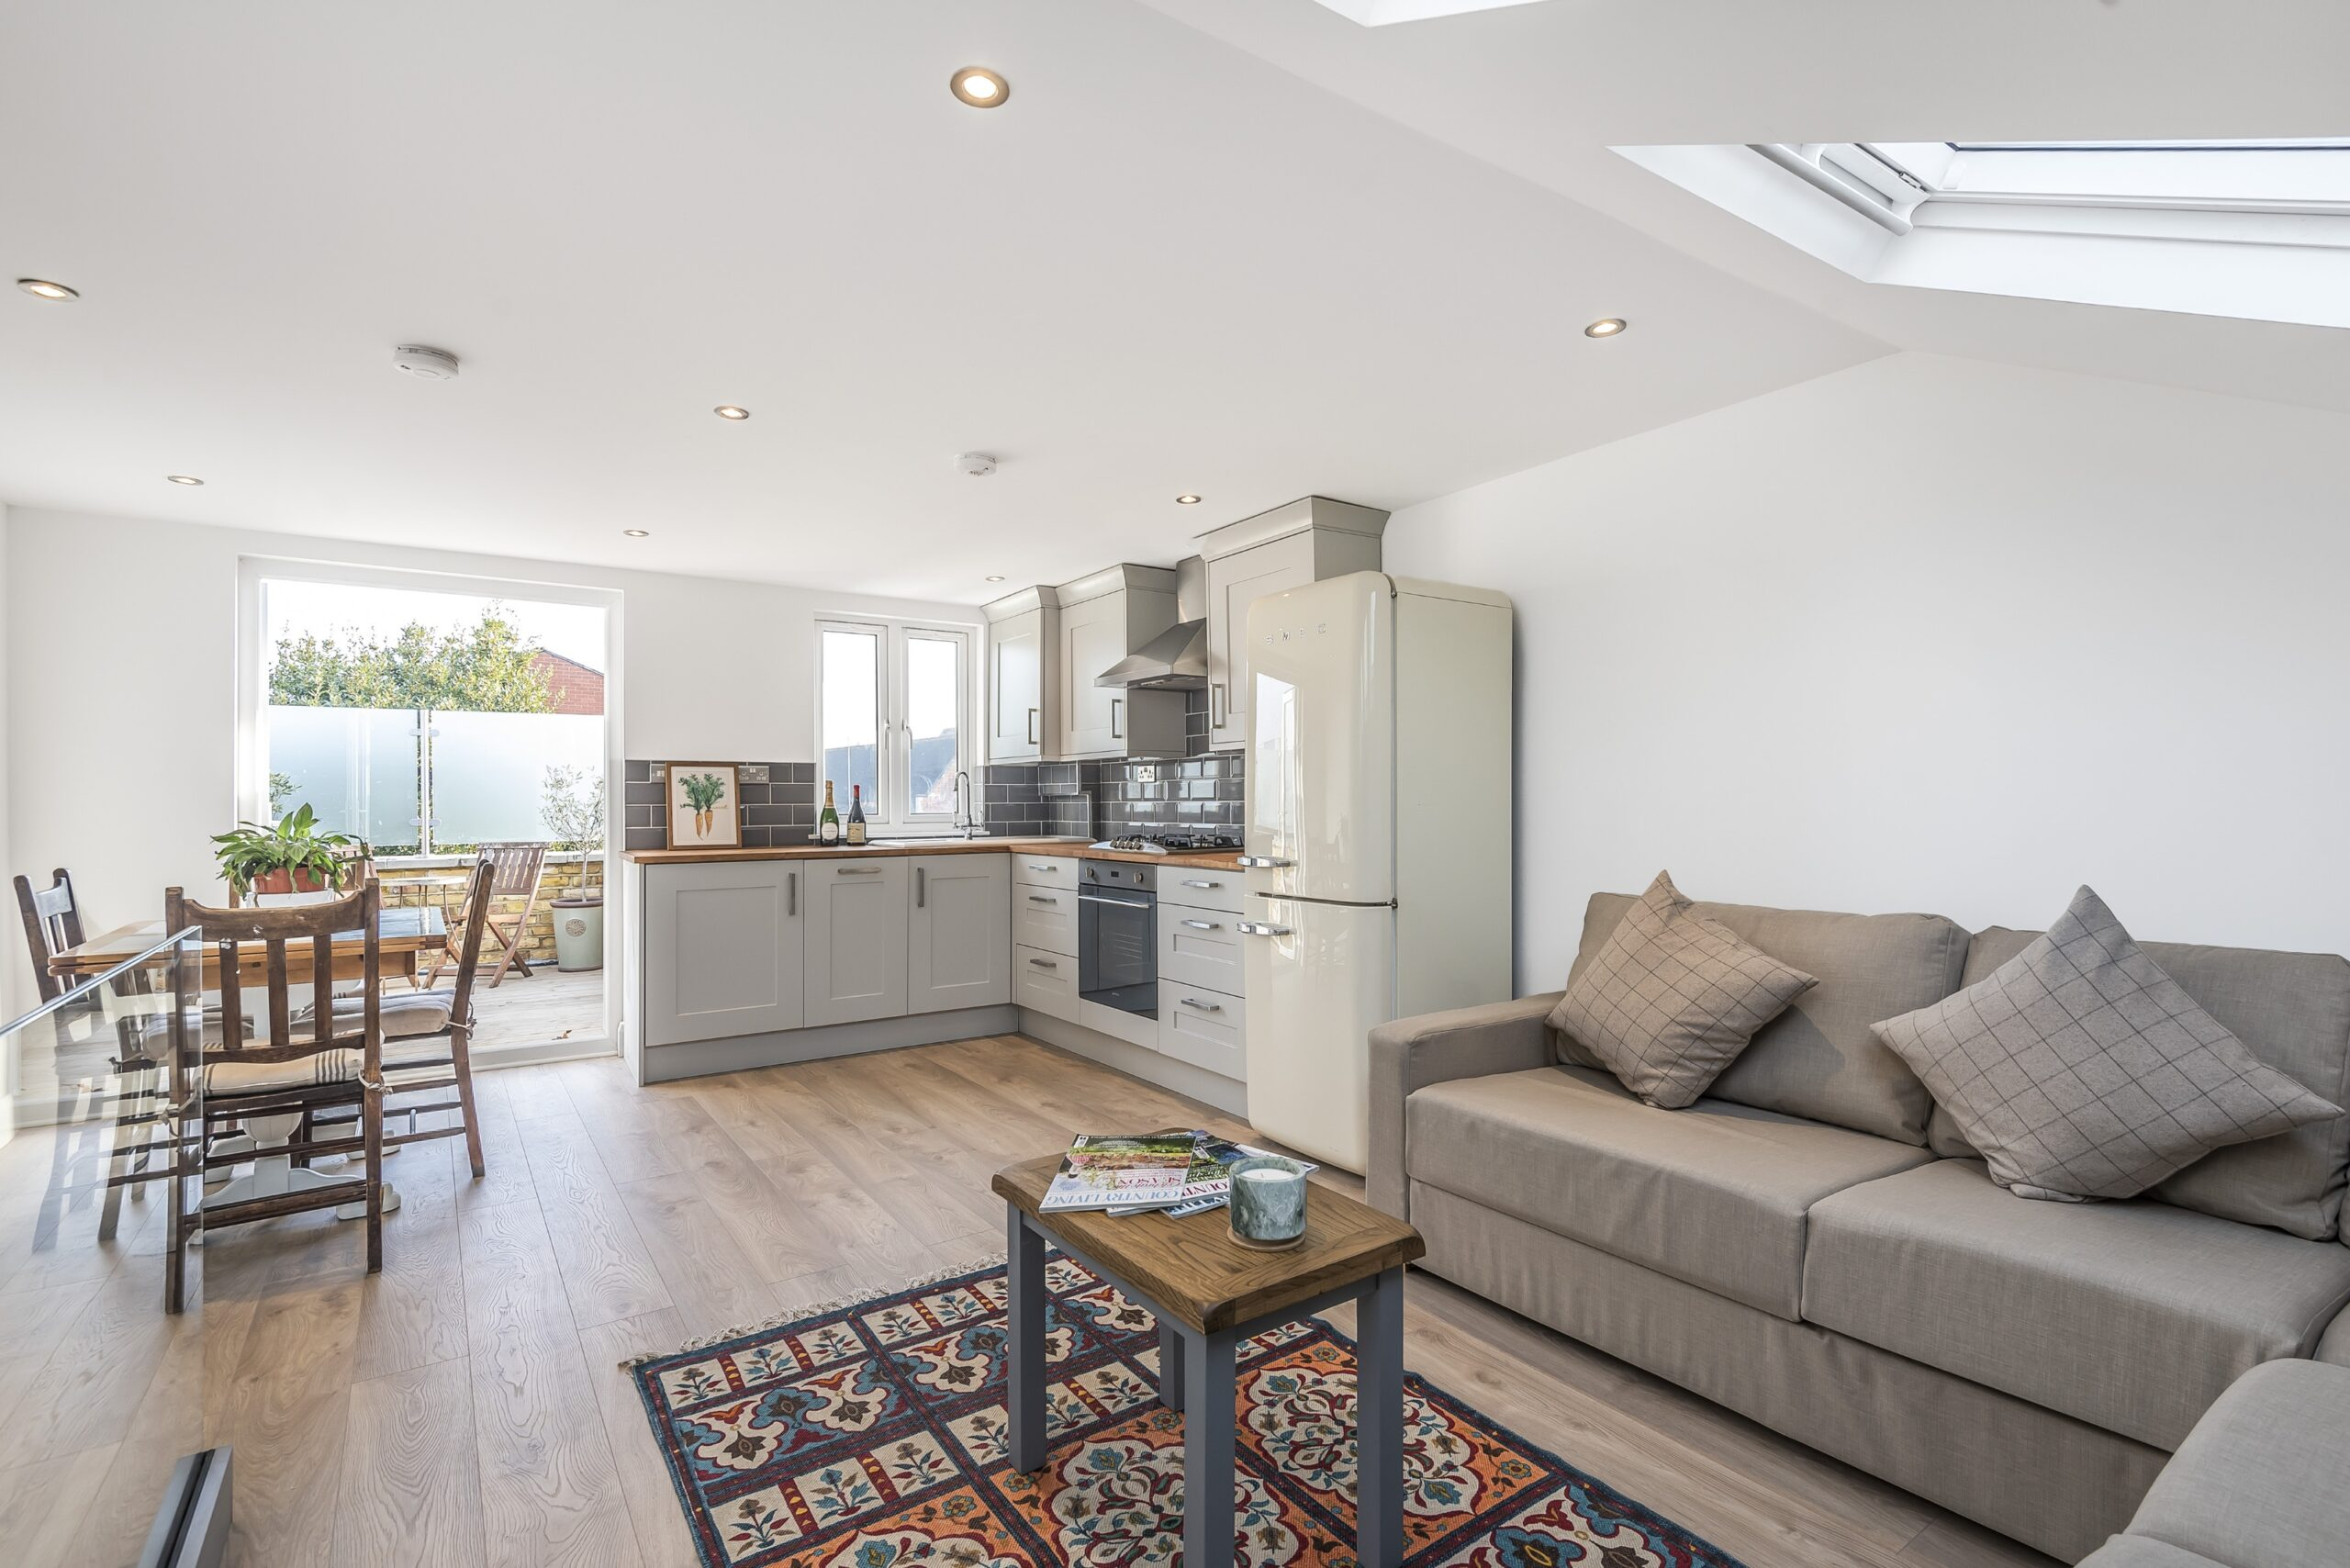 Interior Design Tips For Your Extension